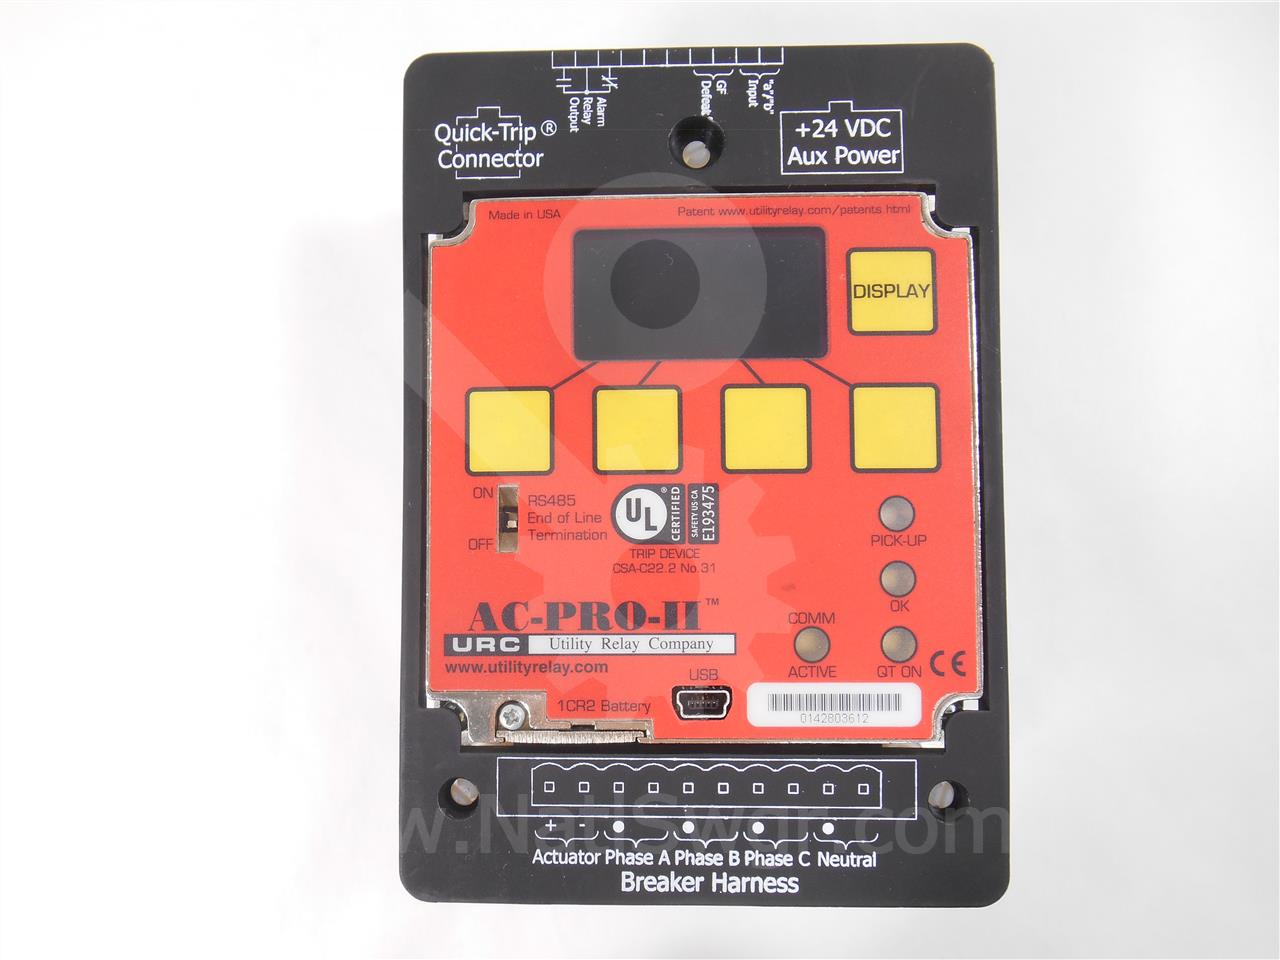 Utility Relay URC AC PRO II SOLID STATE PROGRAMMER LSIG